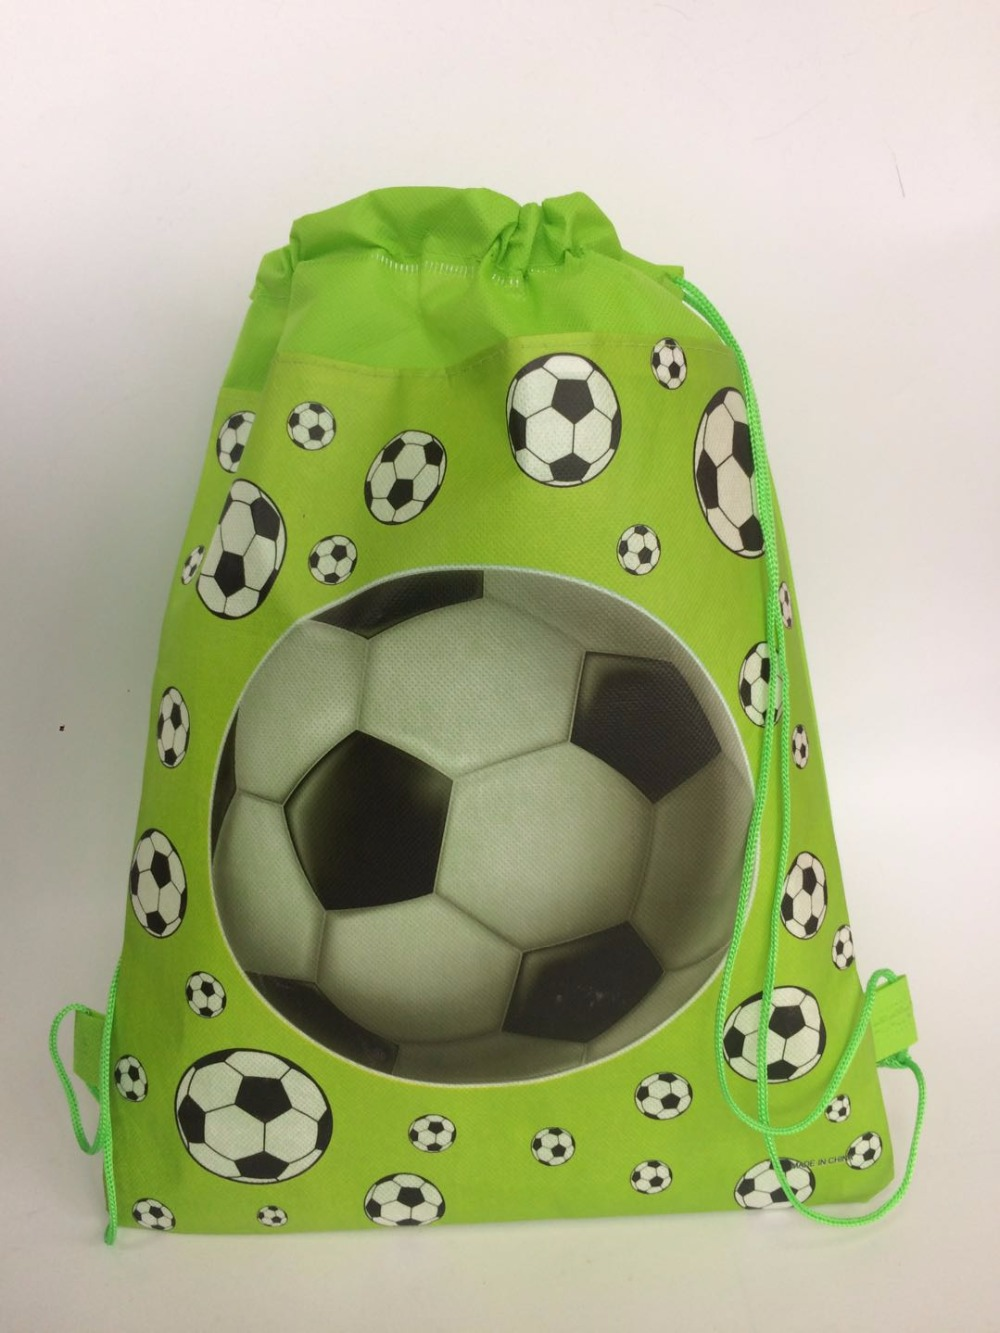 waterproof footballl printed backpack for kids school bag shoe beach travel bag for boys and girls bag pouch for snack shoes doershow shoe and bag to match italian african shoe and bag sets women shoe and bag to match for parties african shoe htx1 18